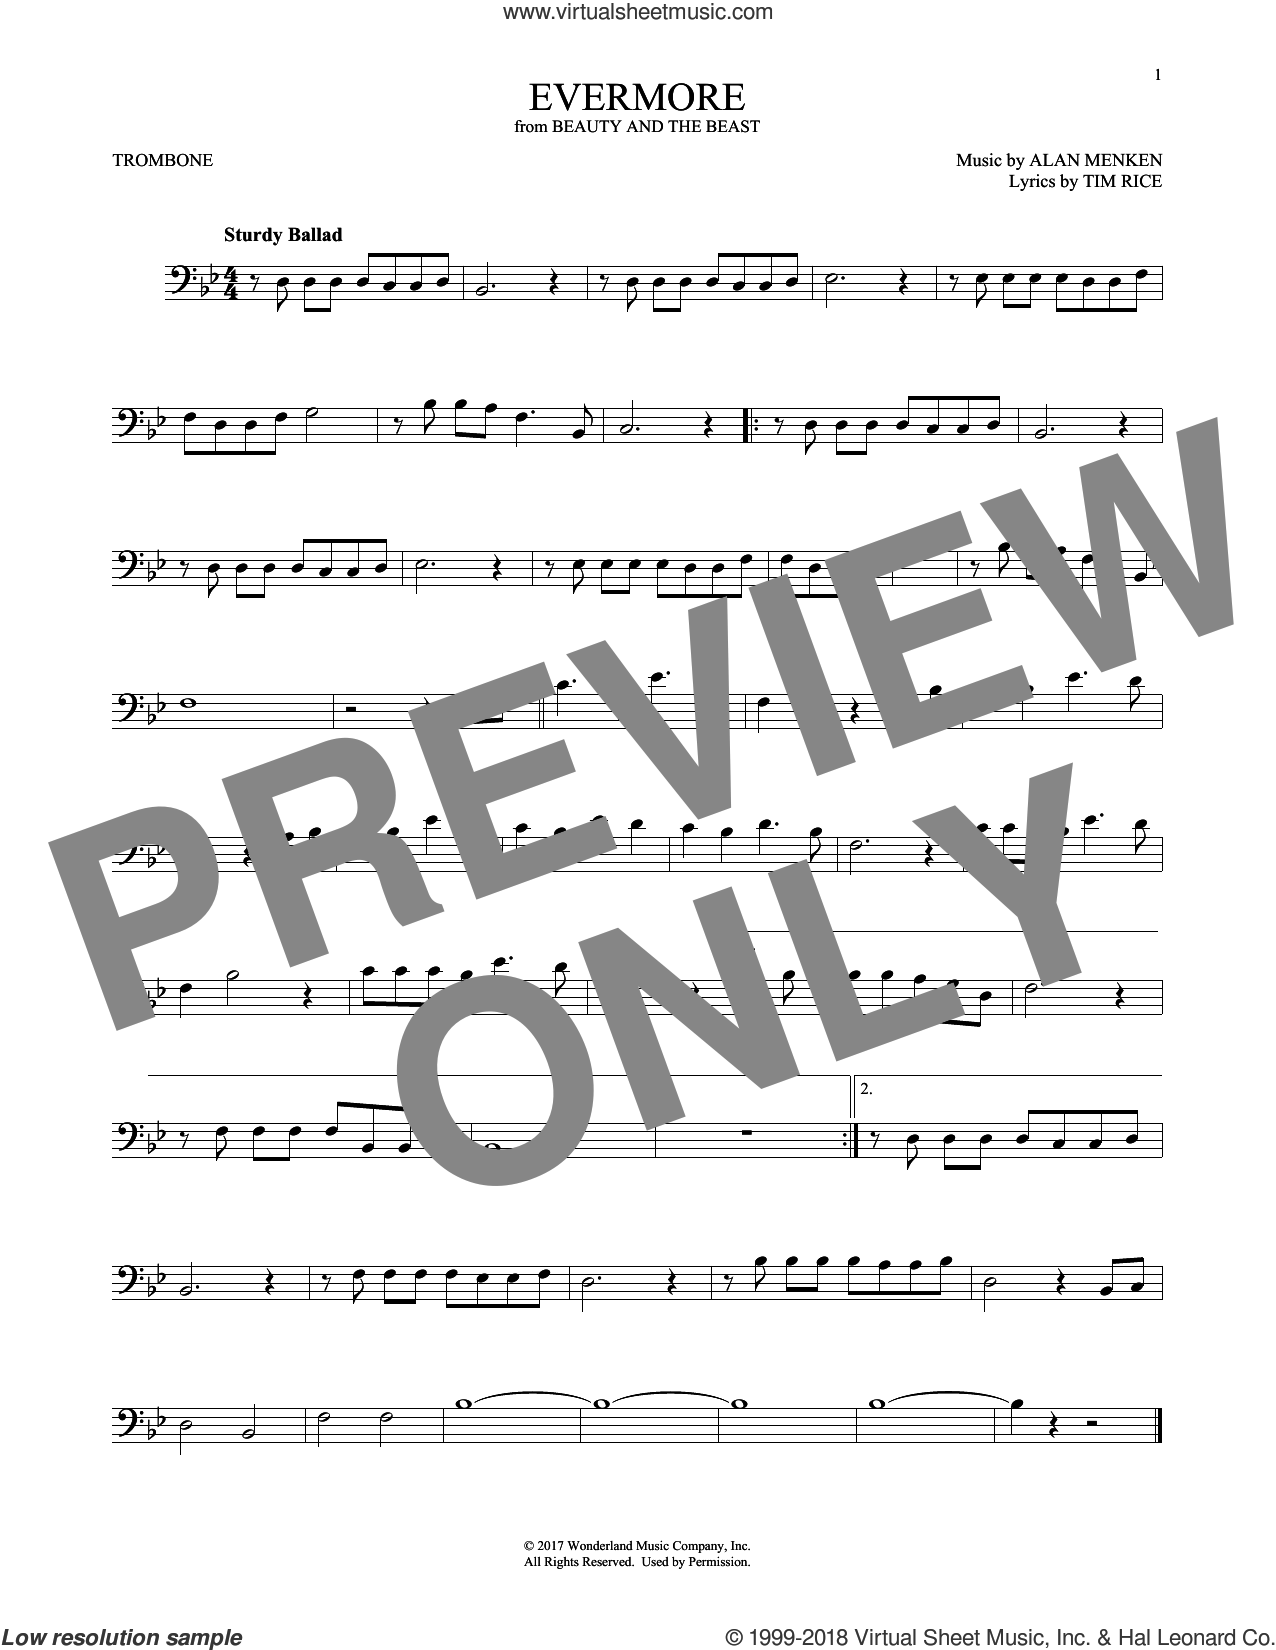 Evermore (from Beauty and the Beast) sheet music for trombone solo by Alan Menken and Tim Rice, intermediate skill level